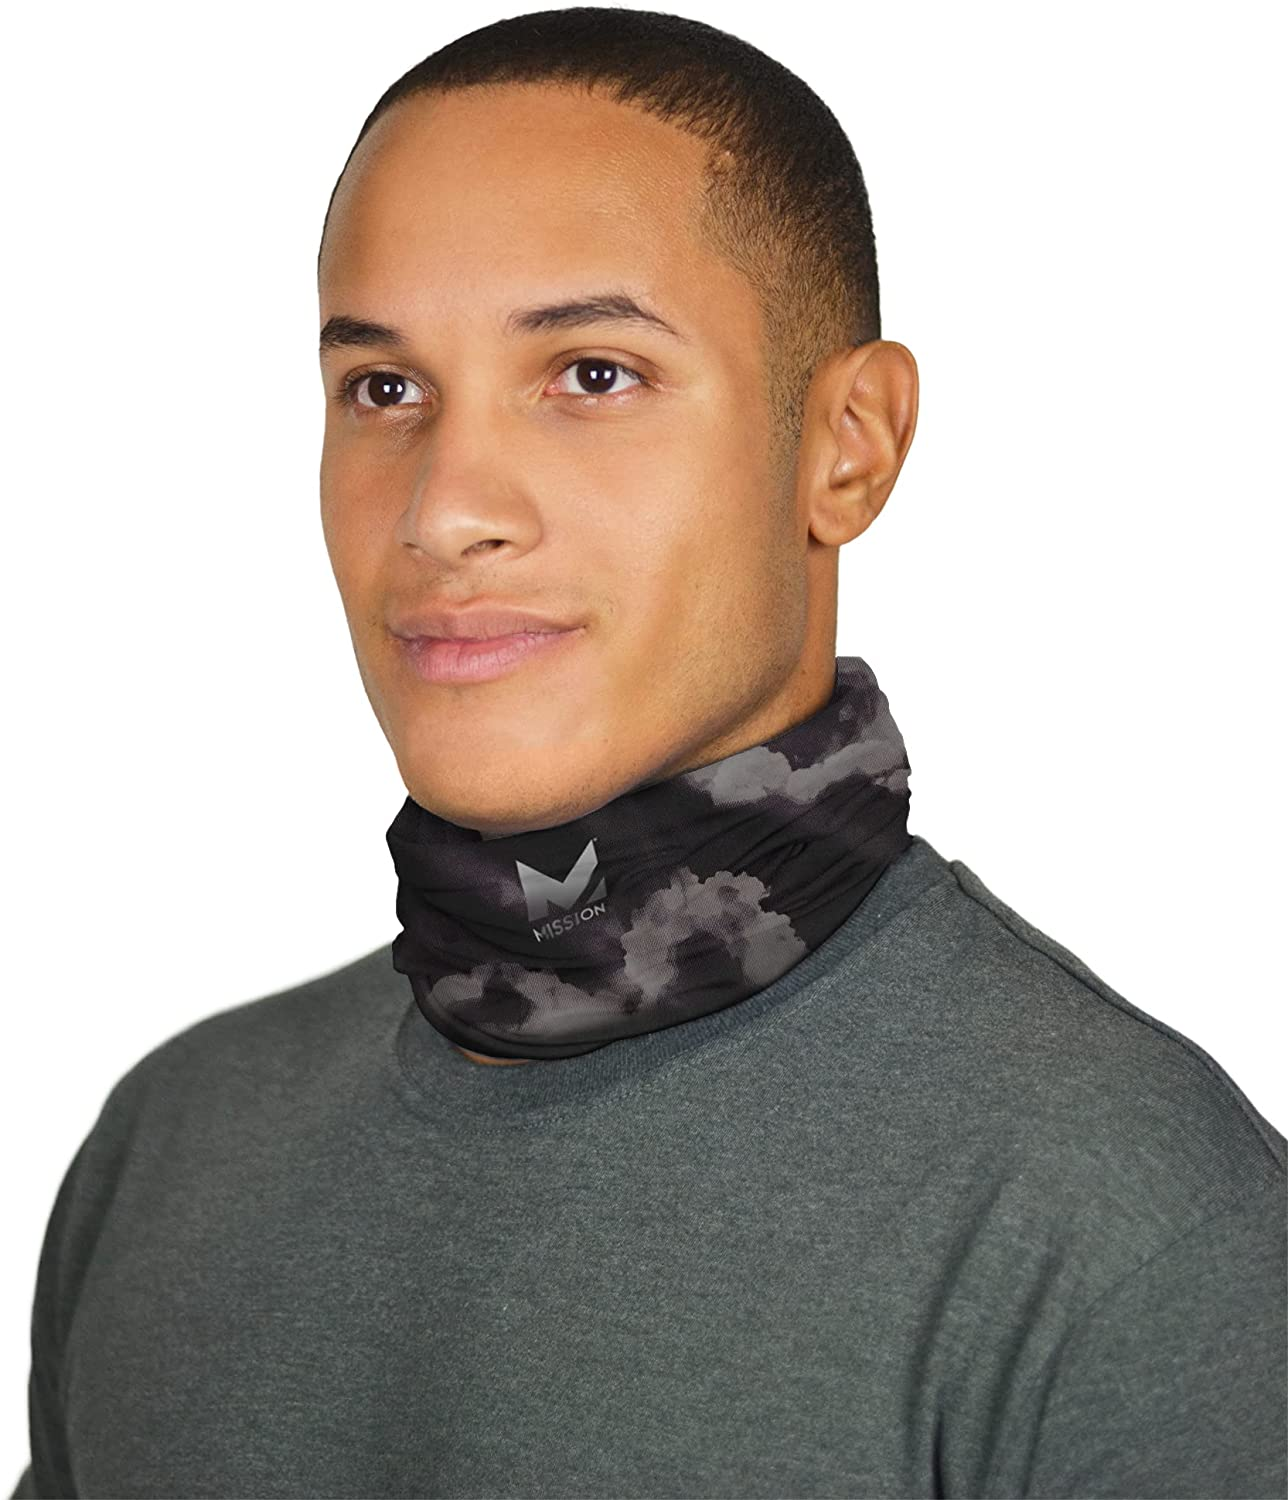 Mission Cooling Neck Gaiter Customize Your Coverage, Face Mask, Cools When Wet- Cloud Quite Shade